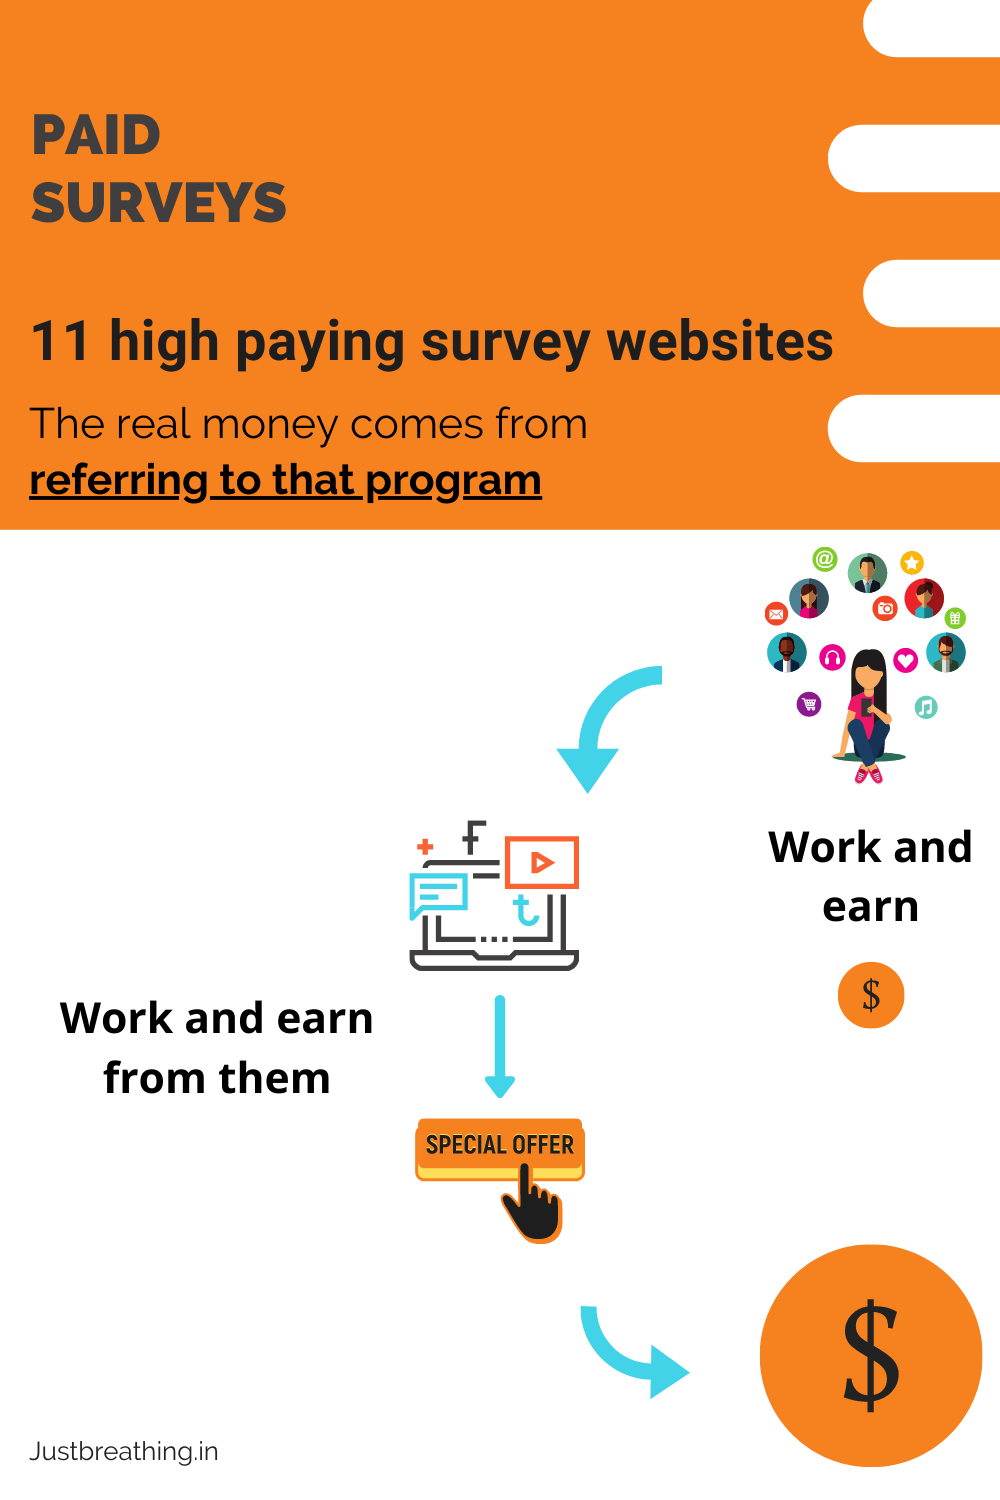 11 high paying survey websites - The real money comes from